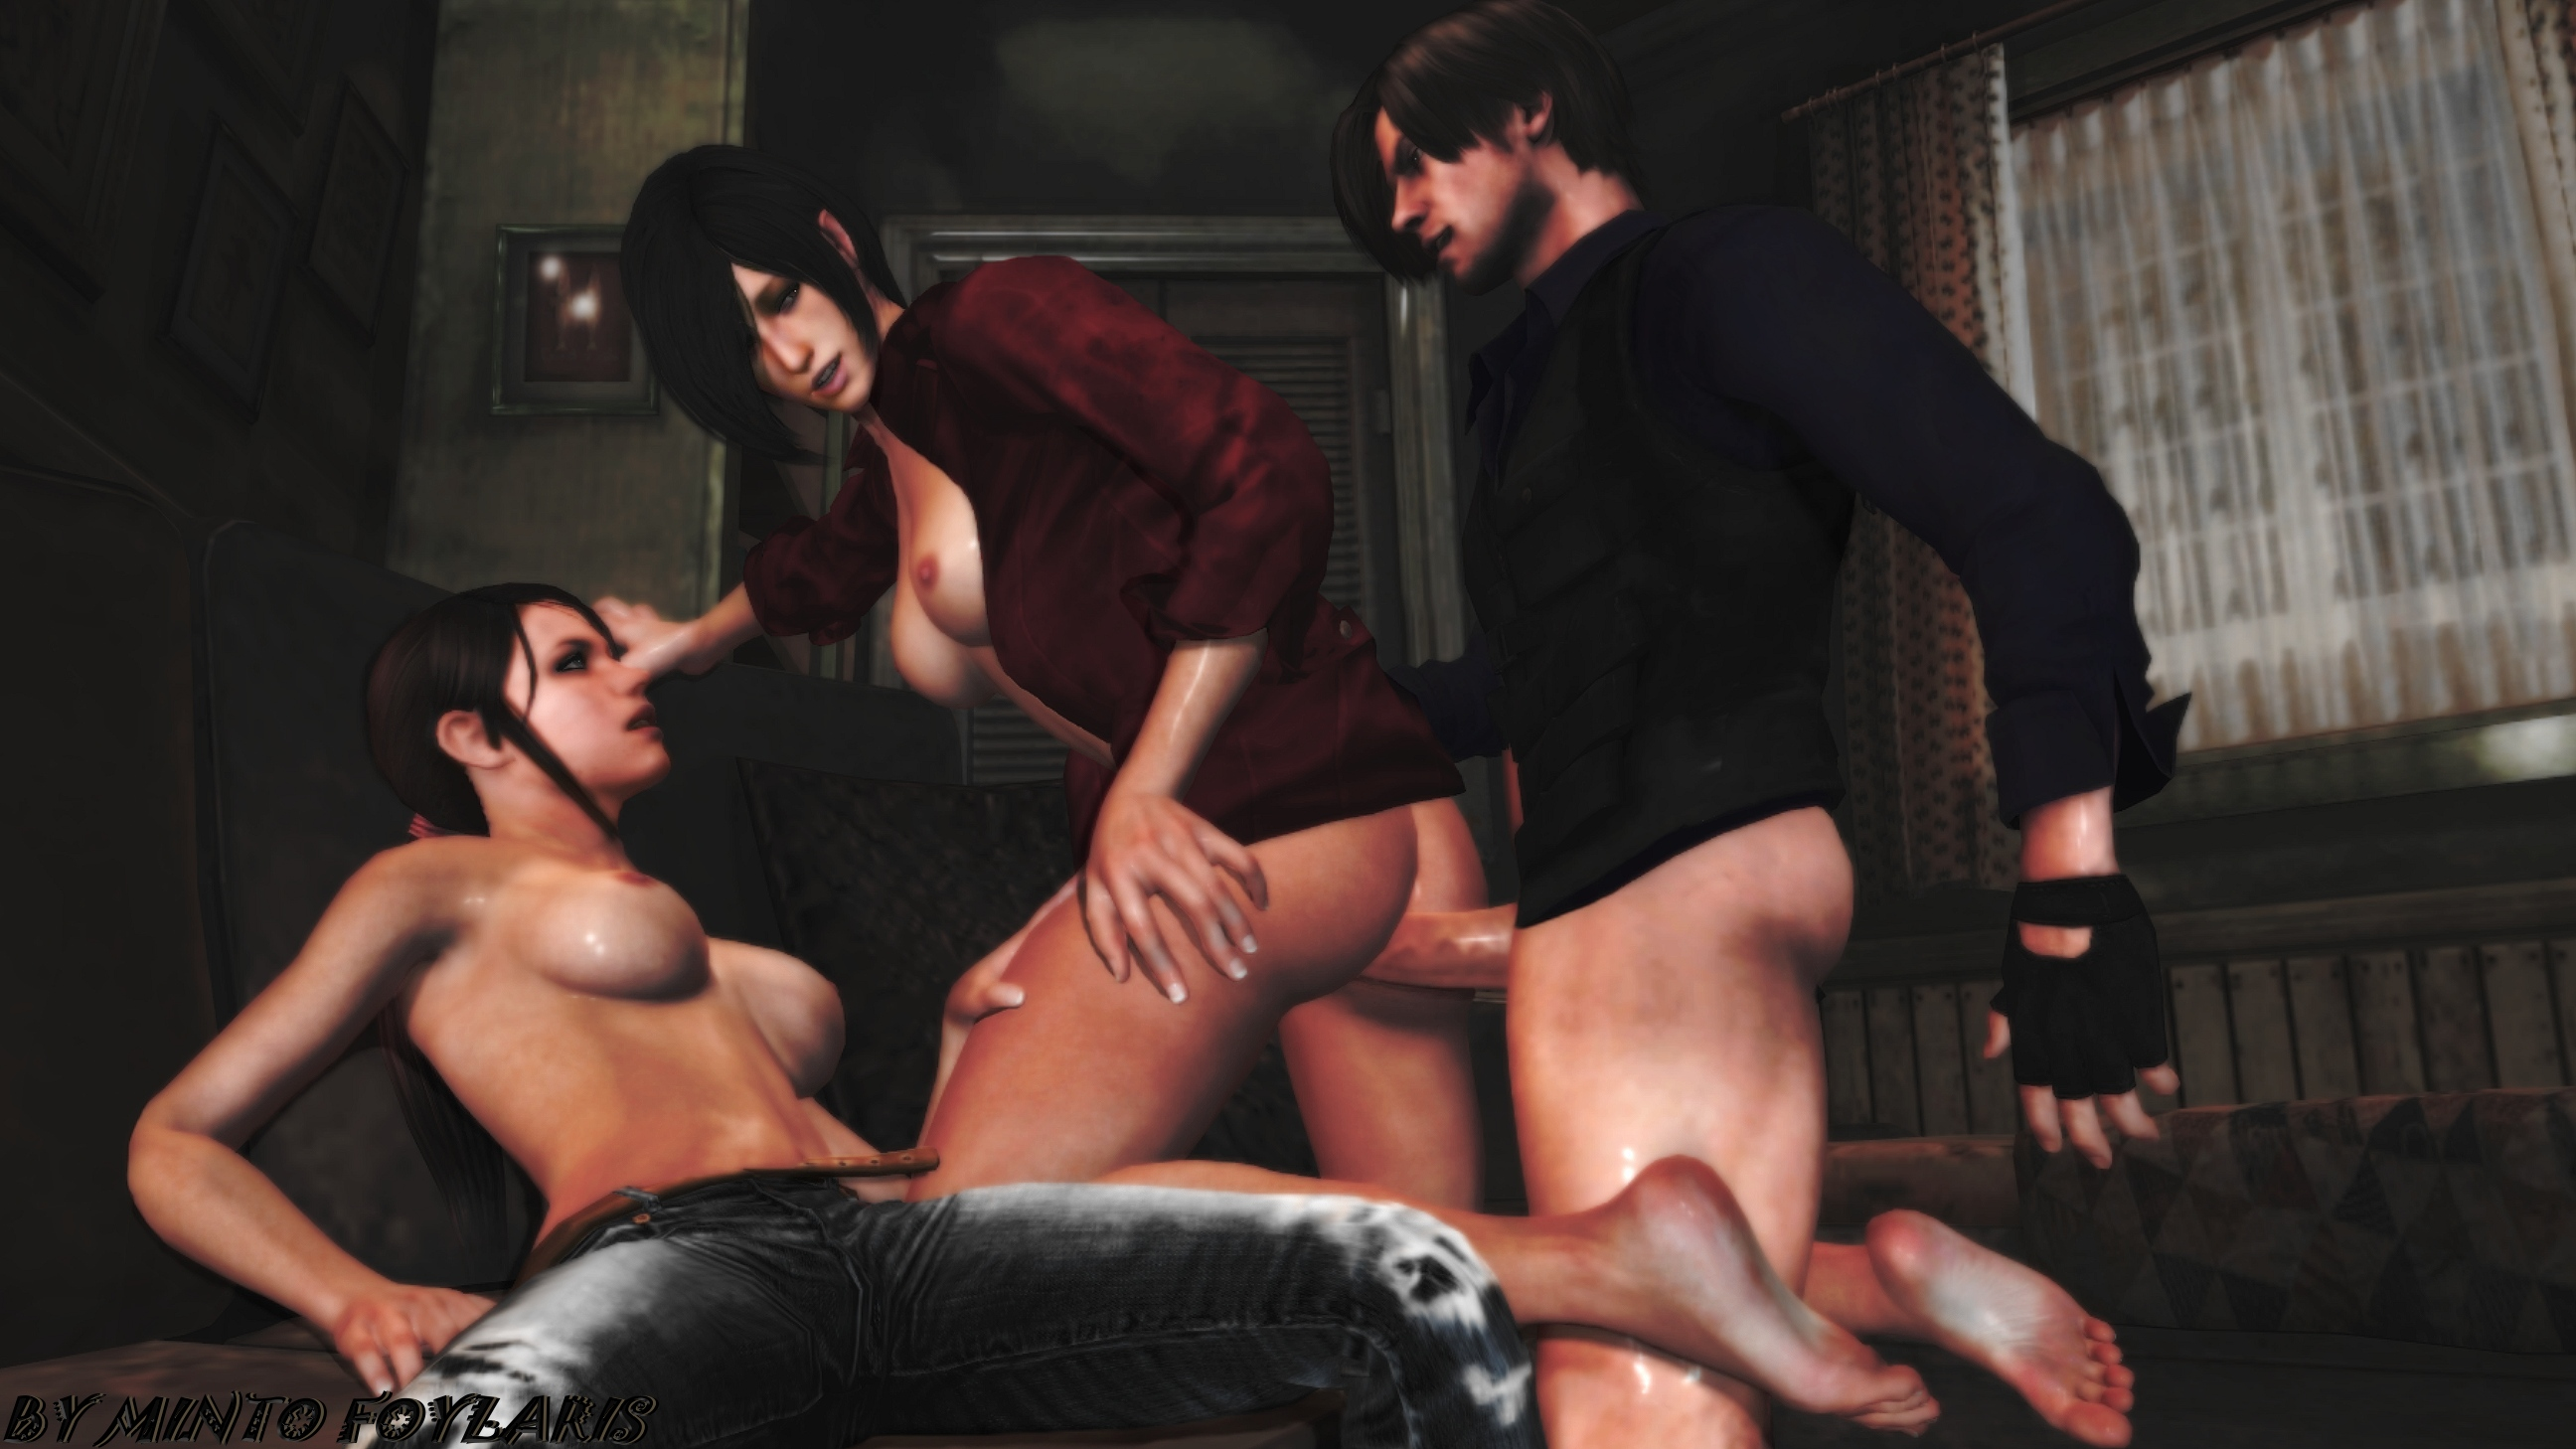 Resident evil forced sex sexual tube